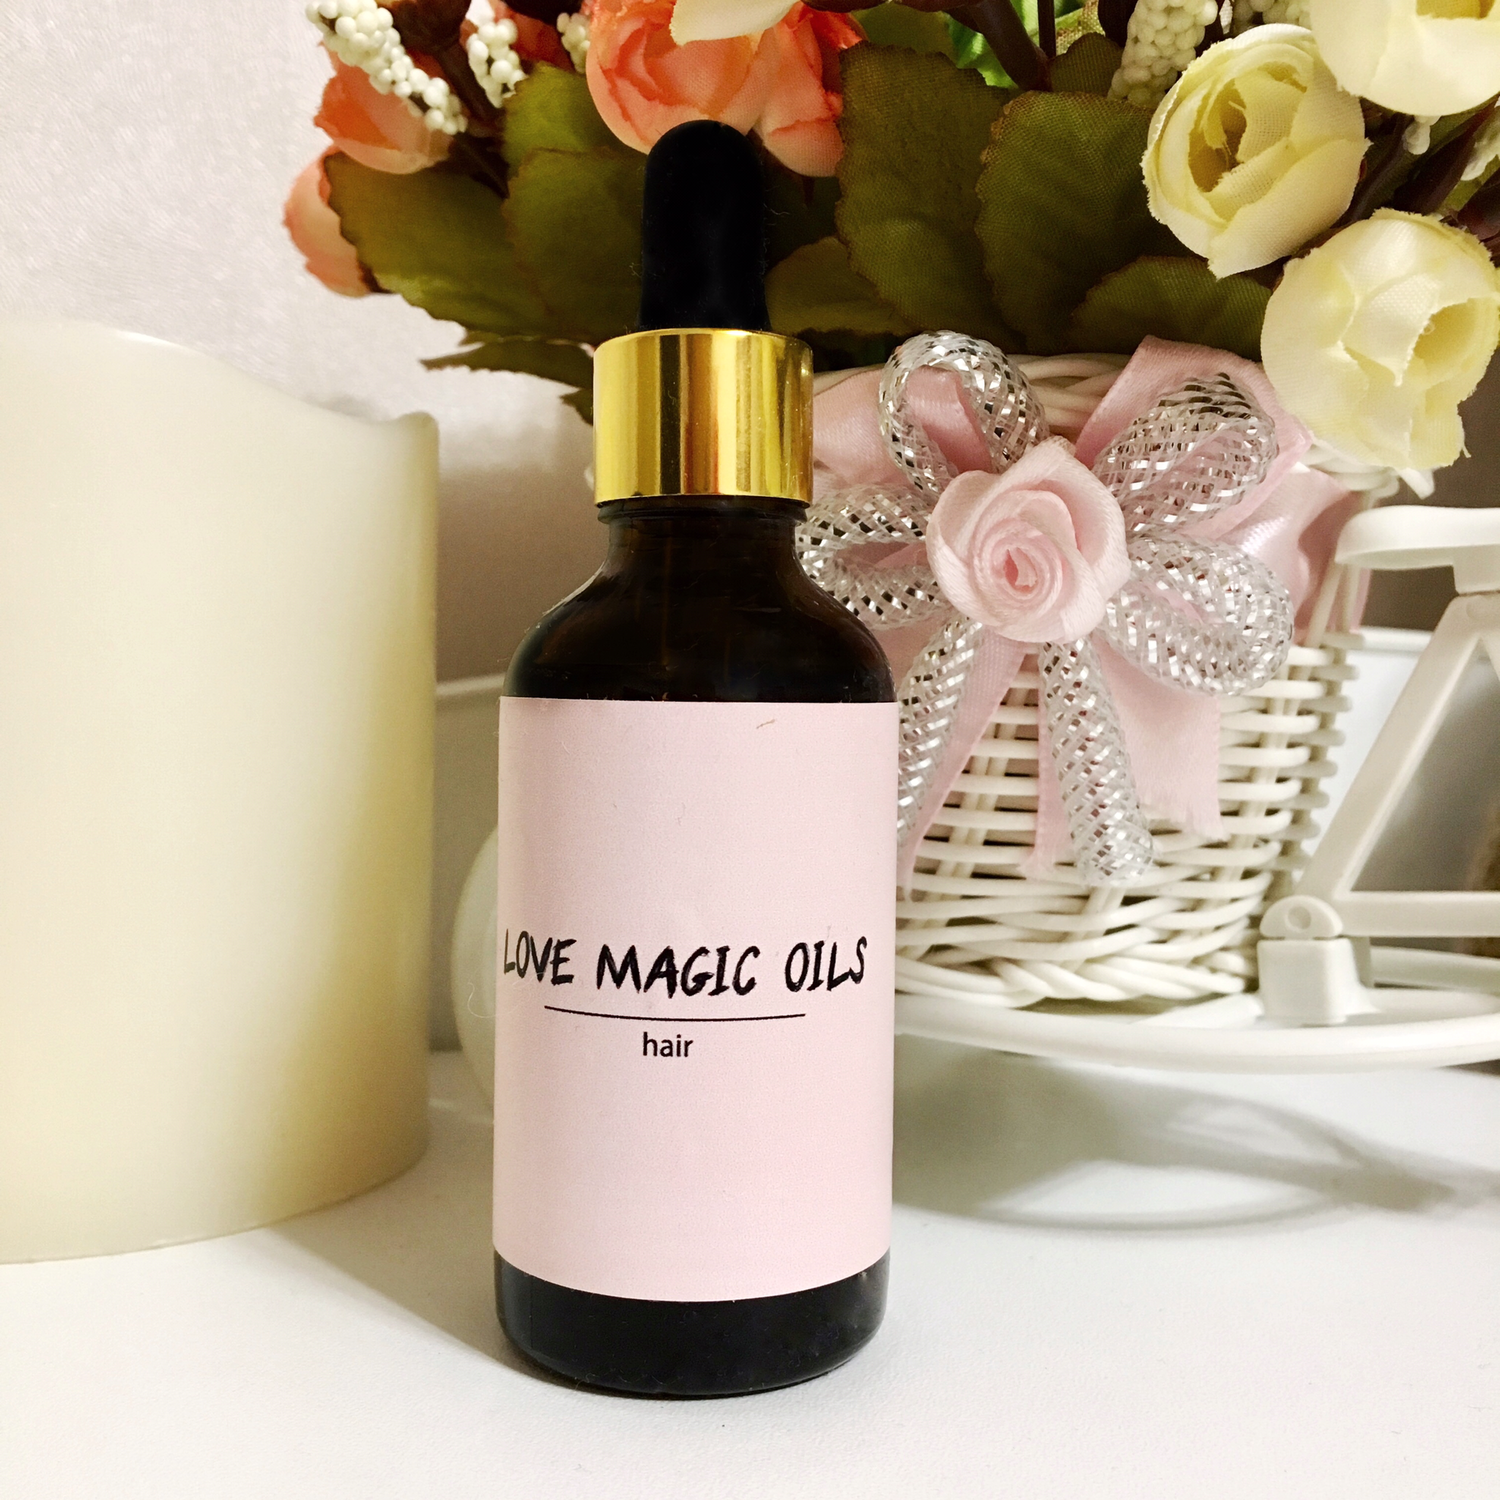 Love Magic Oils (hair)